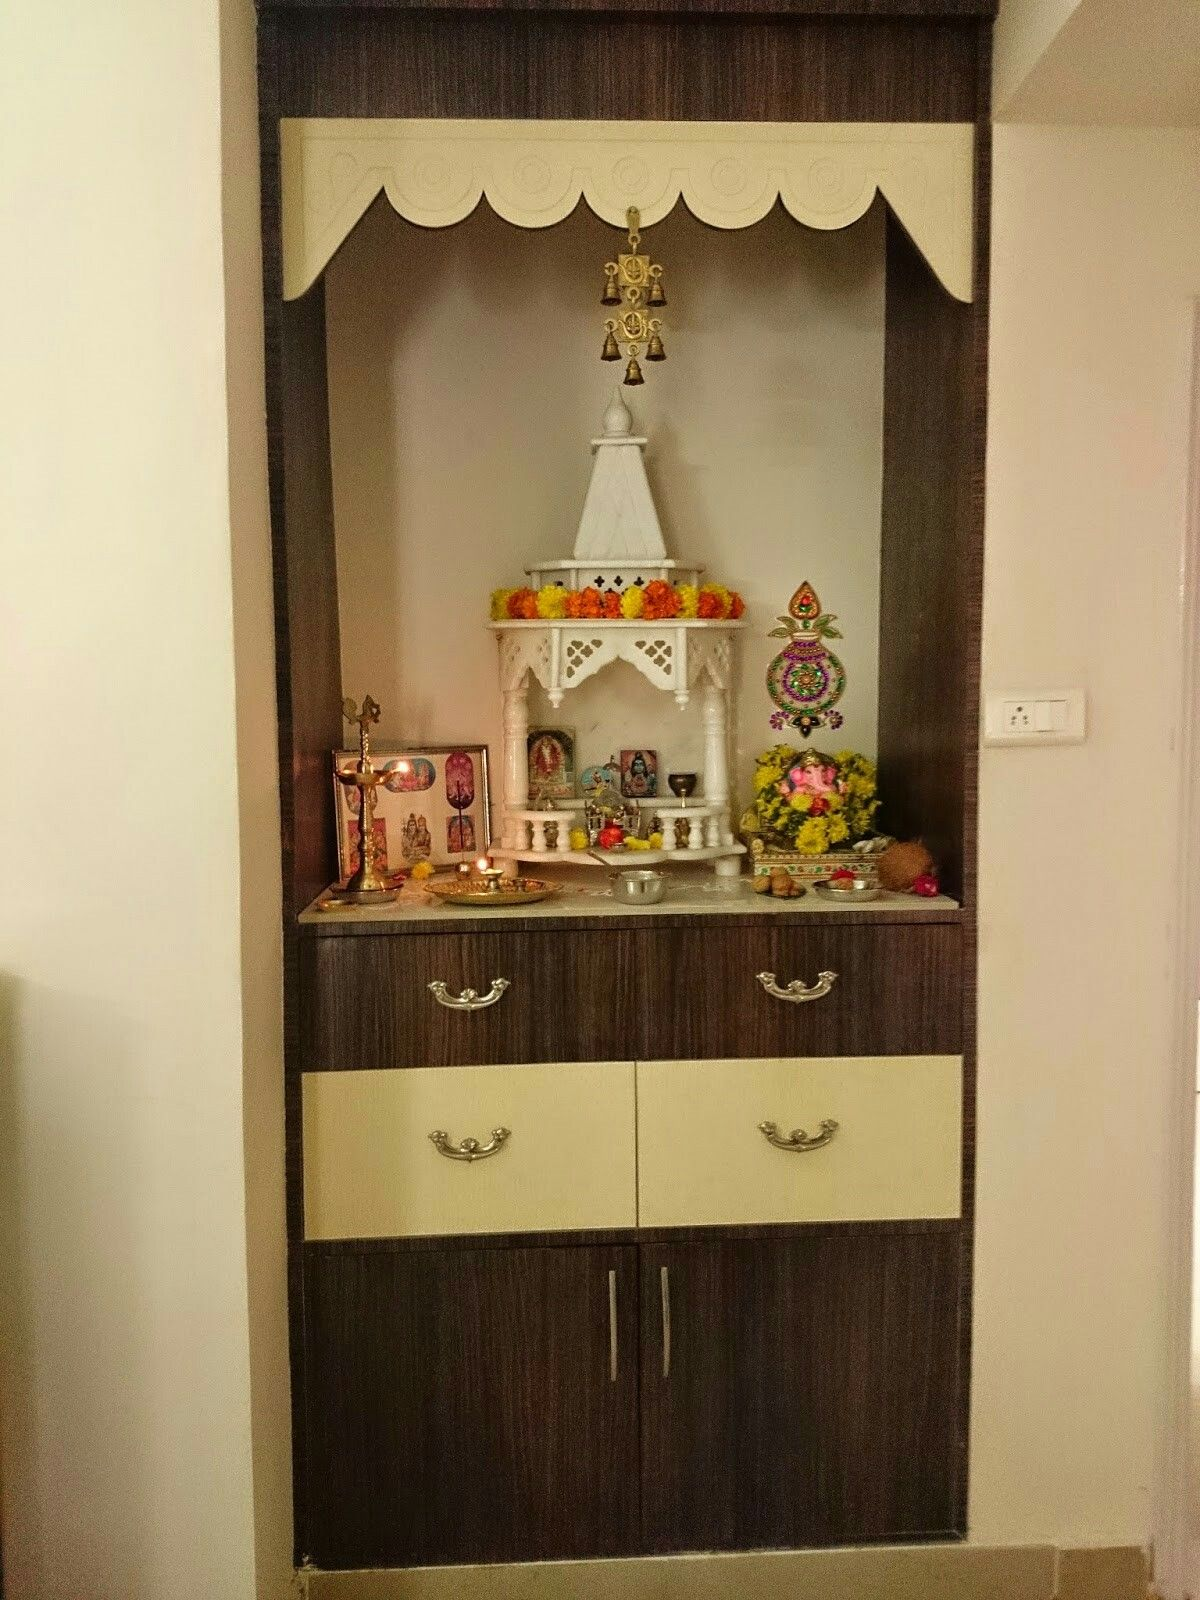 Home interior elevation small pooja room  hindu altar  pinterest  room puja room and